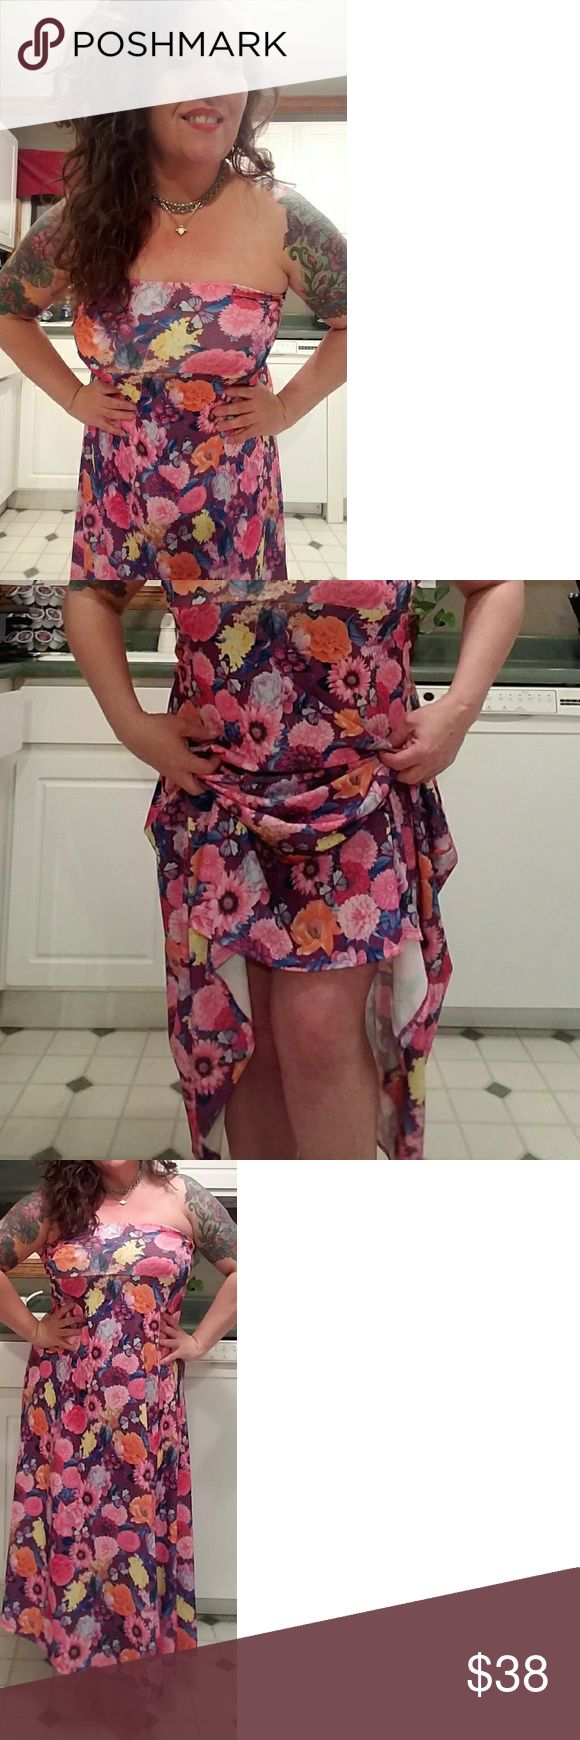 """Gorgeous LULAROE Maxi Skirt/Dress MINT condition, worn once! This maxi skirt with signature LLR comfy wide waistband DOUBLES as a fantastic tube dress! (I am almost 5'2"""" for reference sake). Really pretty bright summer colors with a floral and butterfly pattern. SOOO pretty but I just don't wear it with all my other LLR . LuLaRoe Skirts Maxi"""